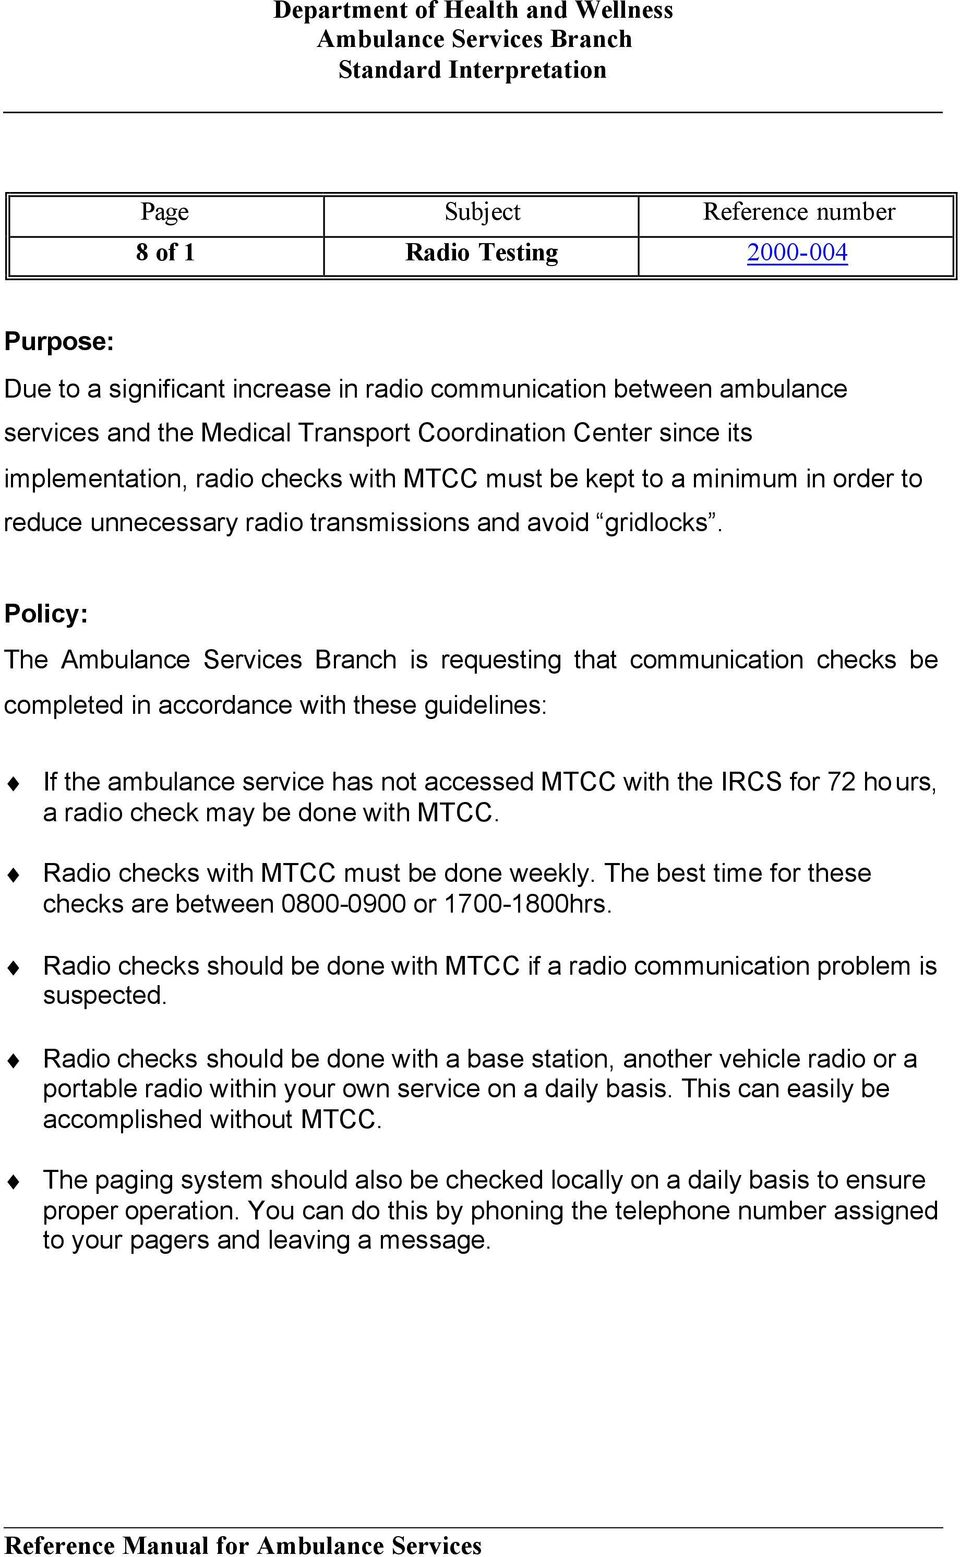 The is requesting that communication checks be completed in accordance with these guidelines: If the ambulance service has not accessed MTCC with the IRCS for 72 hours, a radio check may be done with